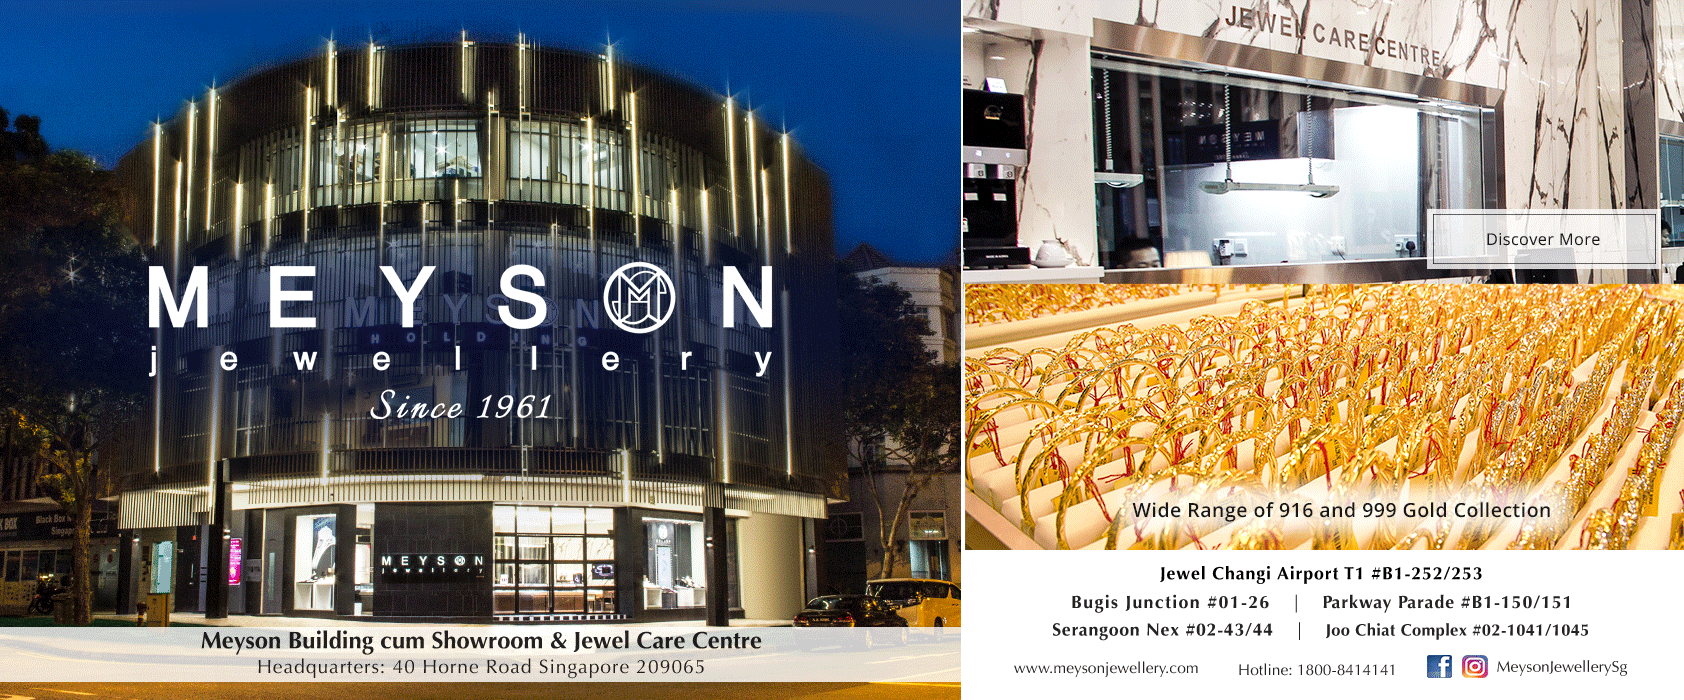 Meyson Jewellery Showroom and Jewel Care Centre